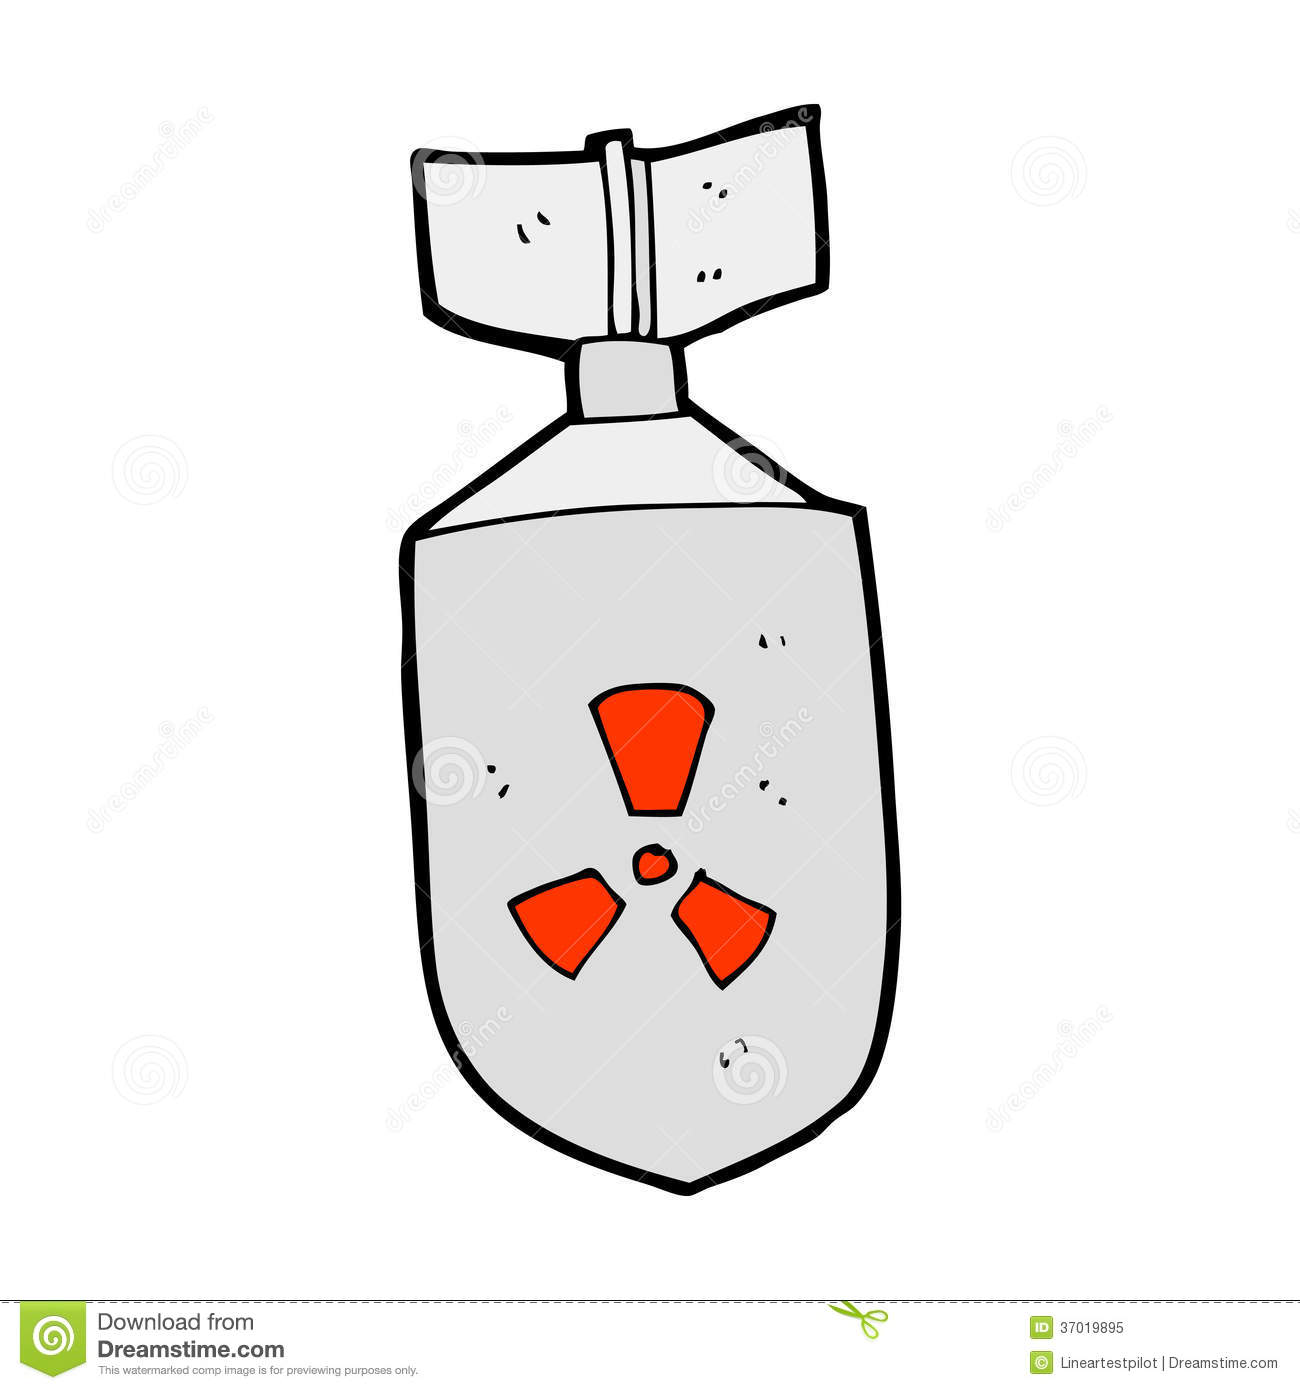 Cartoon Nuclear Stock Vector Illustration Of Nuclear